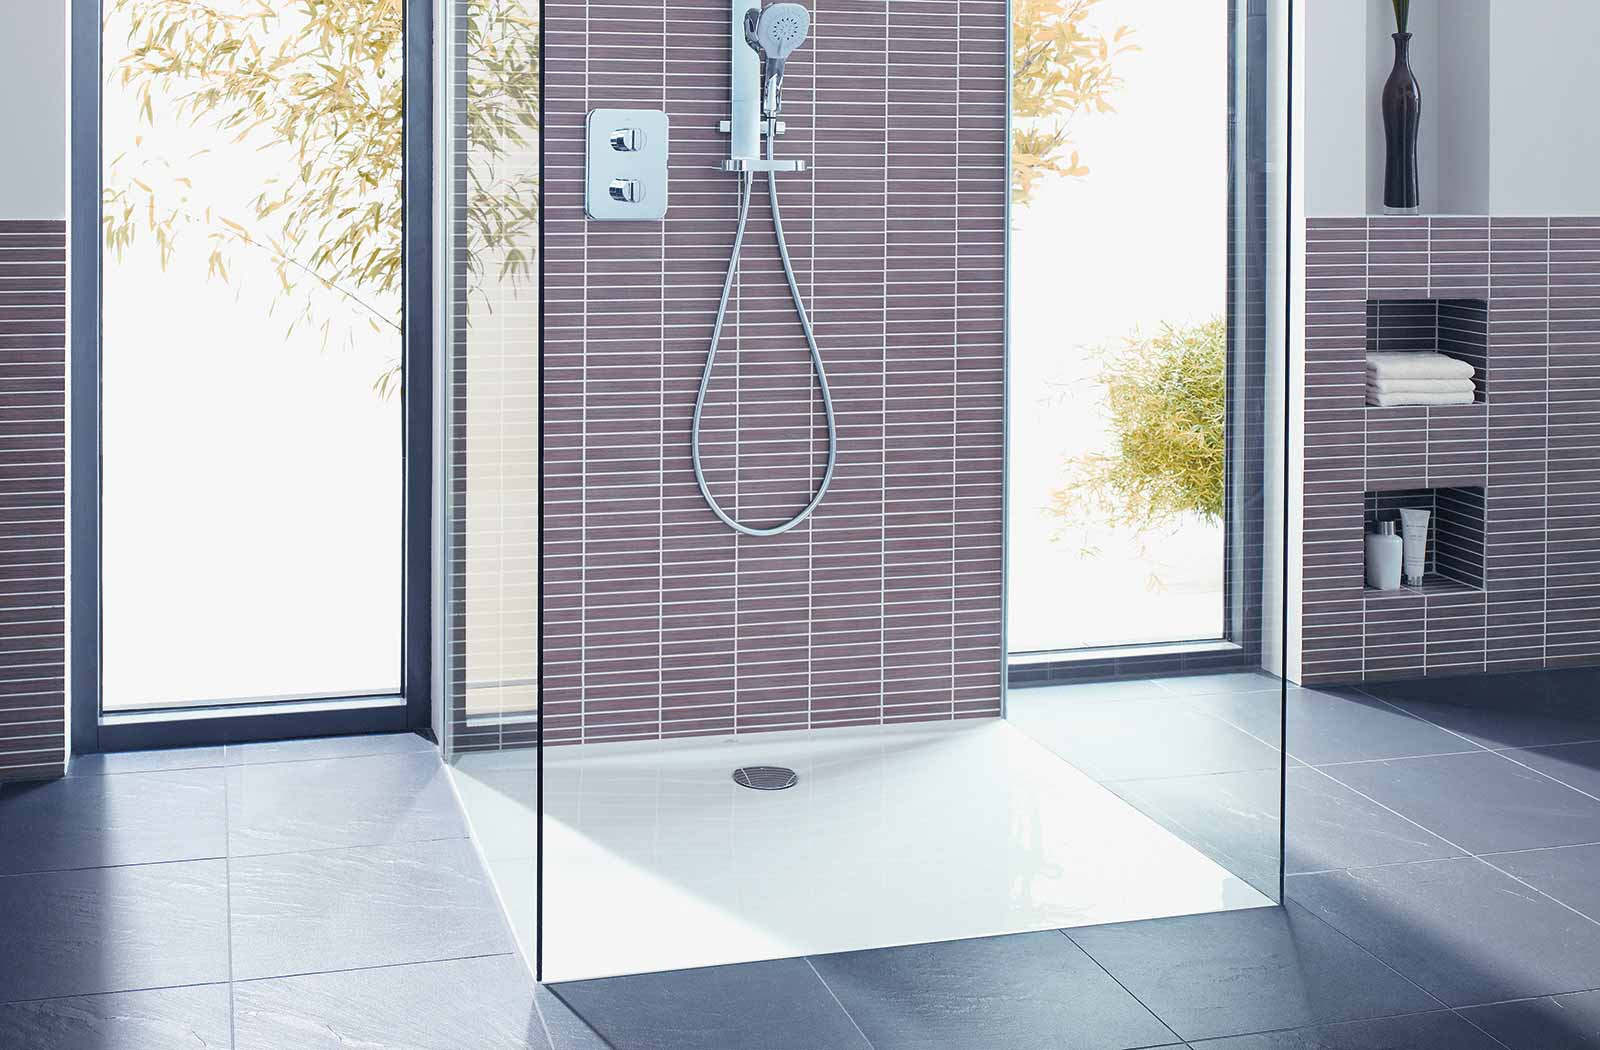 Receveur douche Ideal Standart ultraflat 0